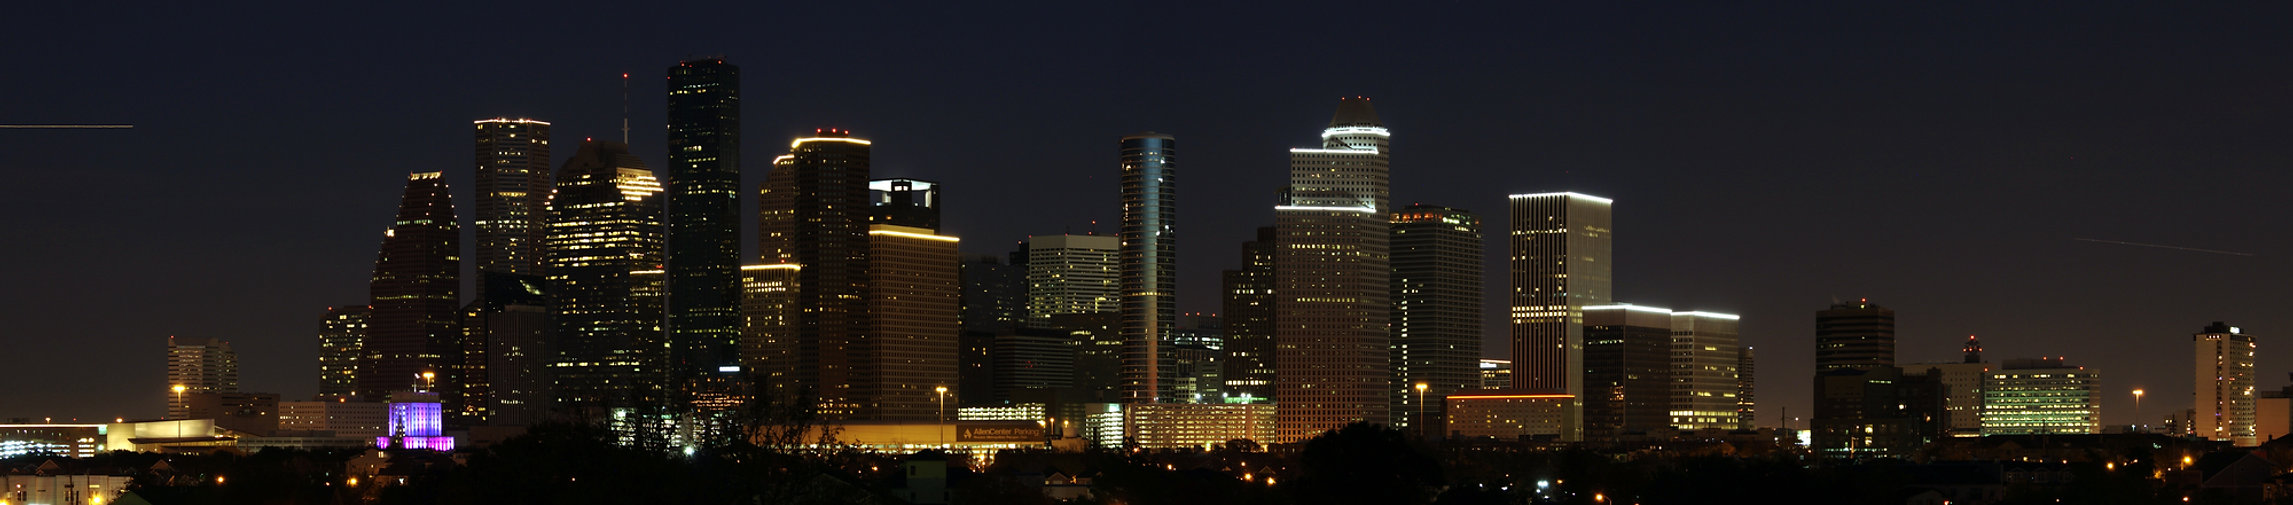 Houston_Skyline_(5374518048).jpg